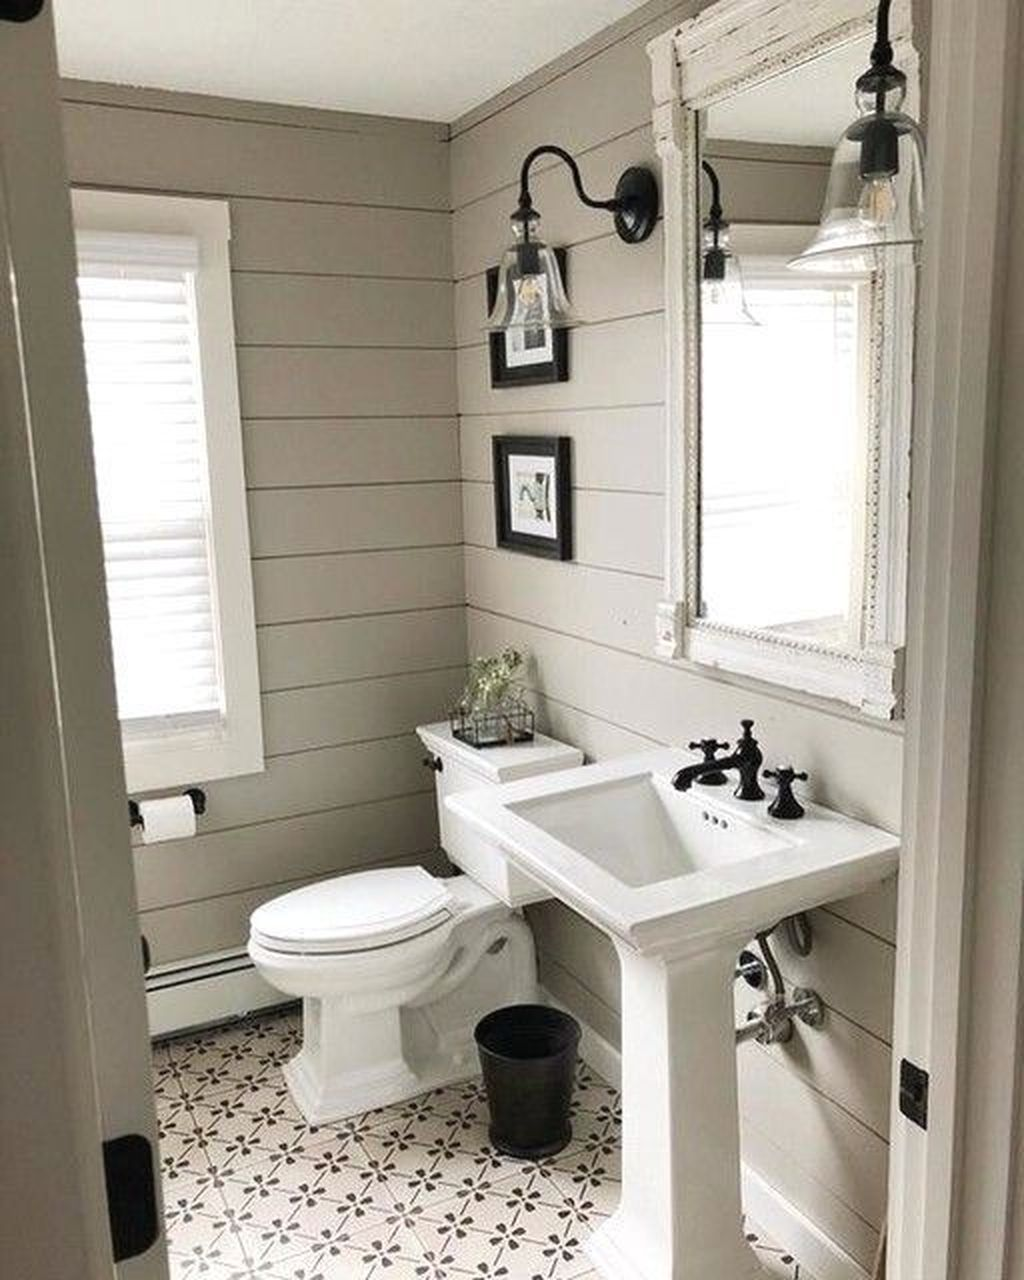 Awesome Small Bathroom Remodel Ideas On A Budget 13